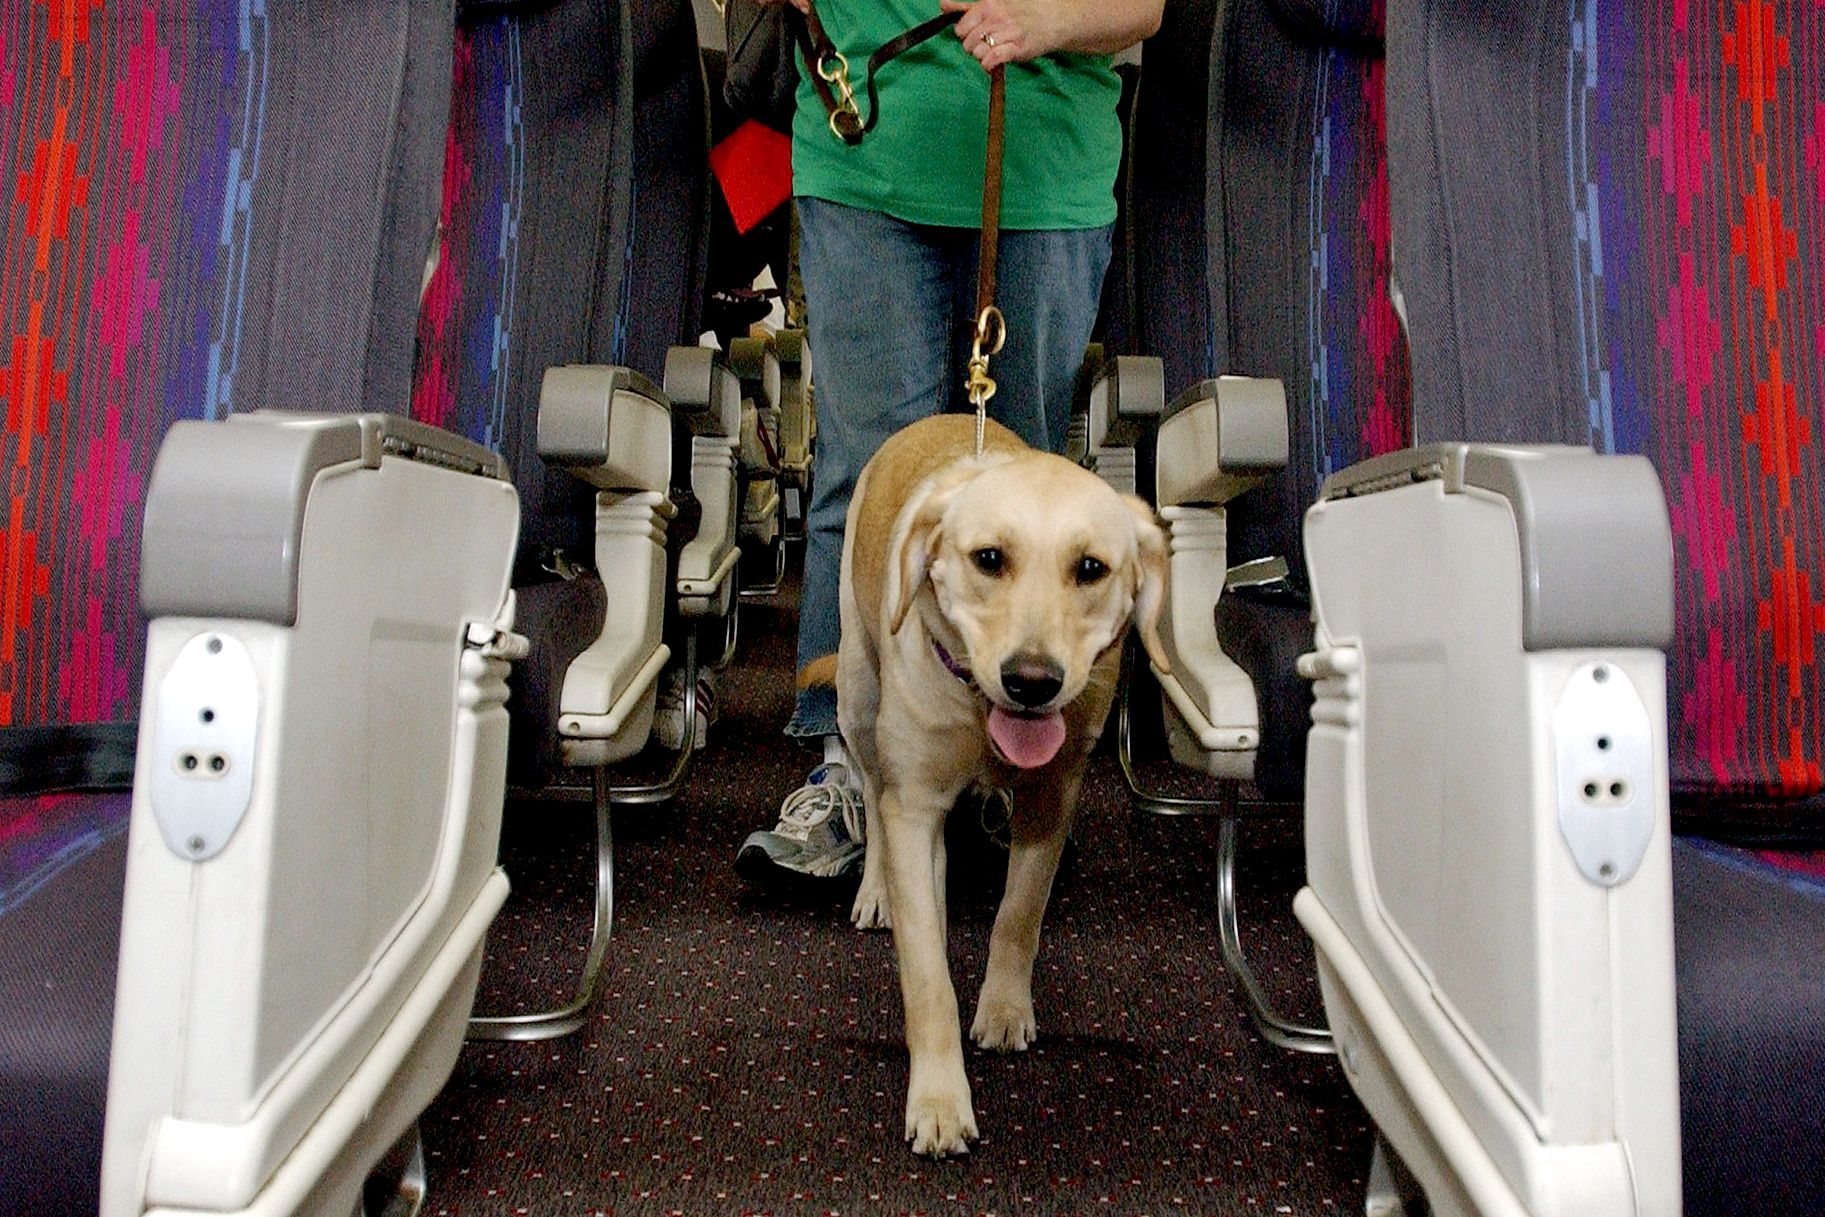 Which Airlines Have the Best Pet Policies? Emotional